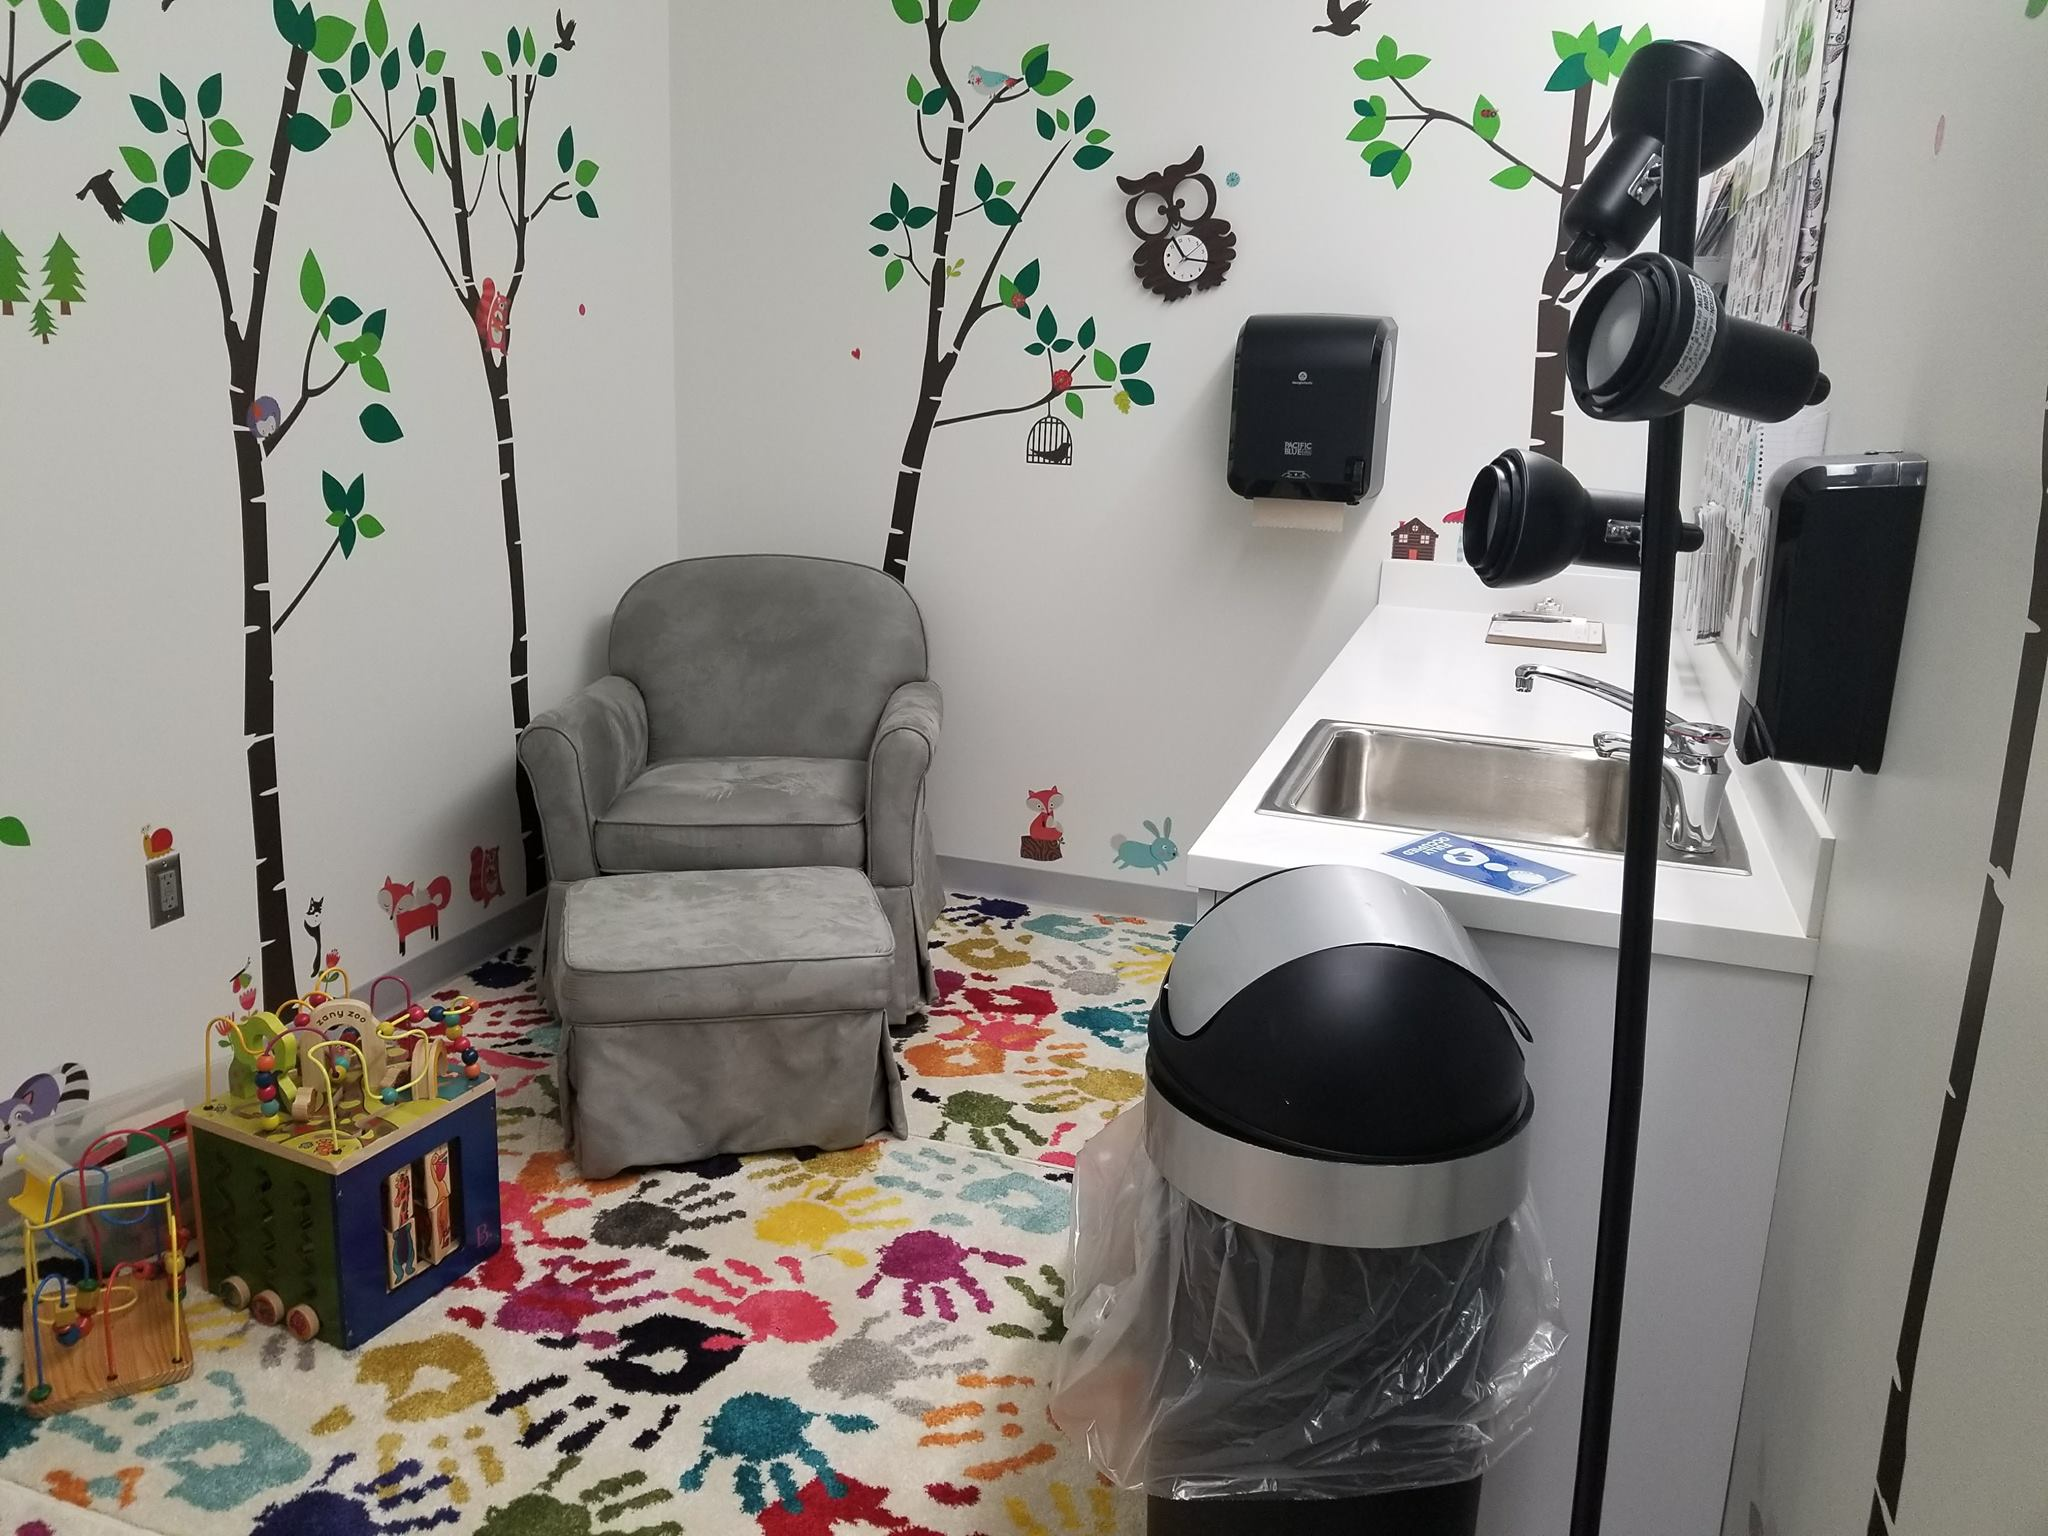 Lactation room equipped with a chair, foot rest, sink, trashcan, and children's toys.